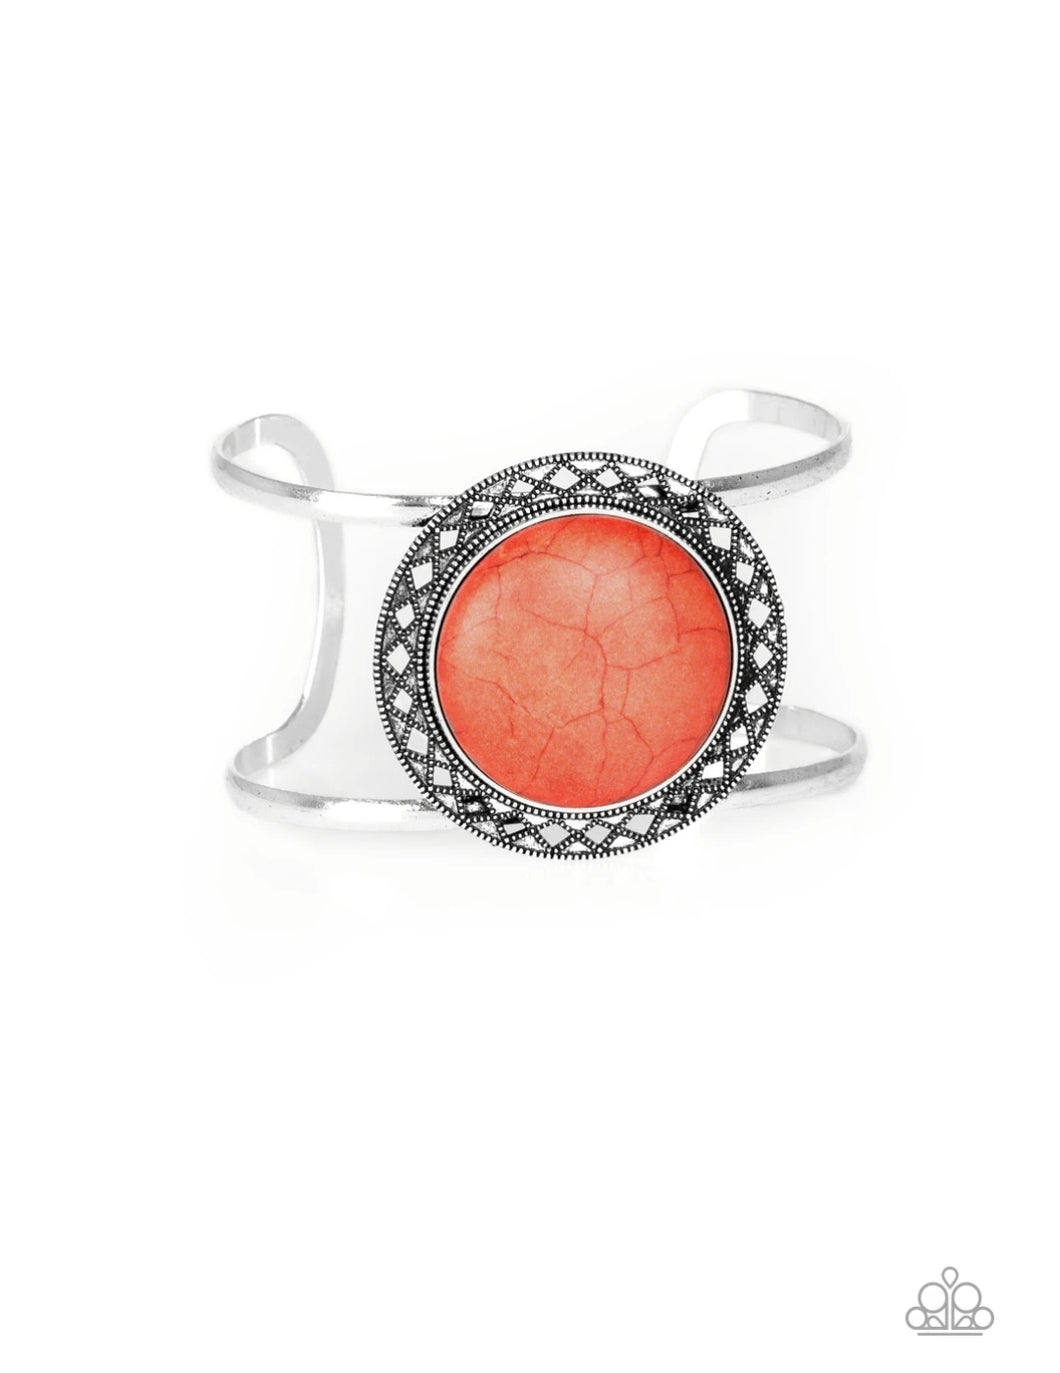 Paparazzi Accessories Rodeo Rage - Orange Bracelets  - Lady T Accessories